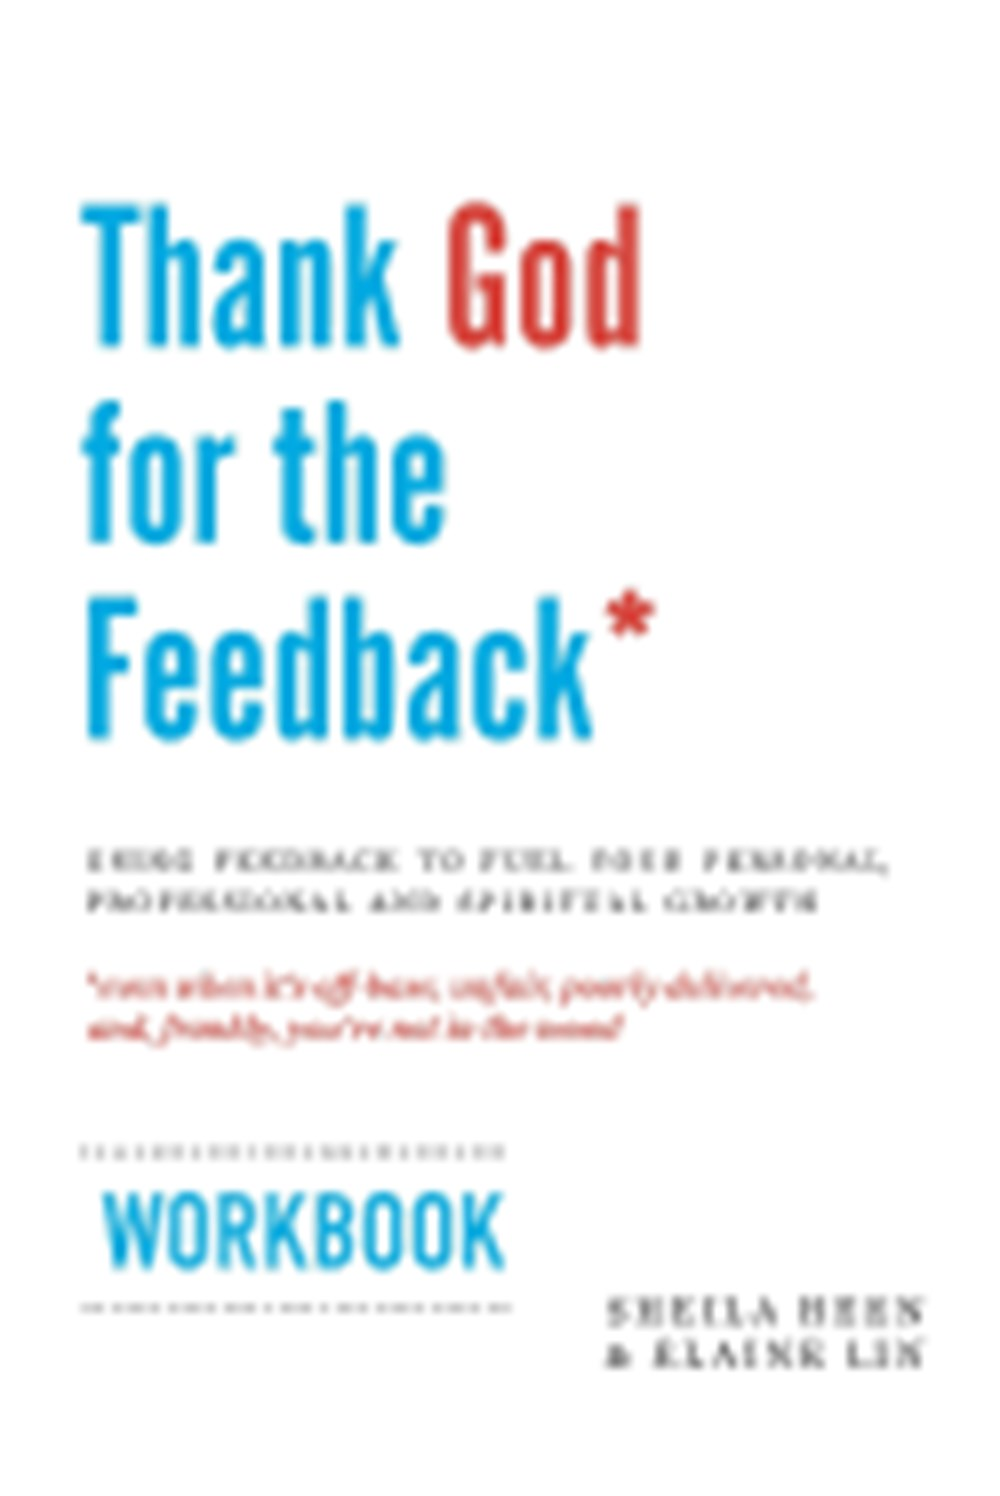 Thank God for the Feedback Using Feedback to Fuel Your Personal, Professional and Spiritual Growth